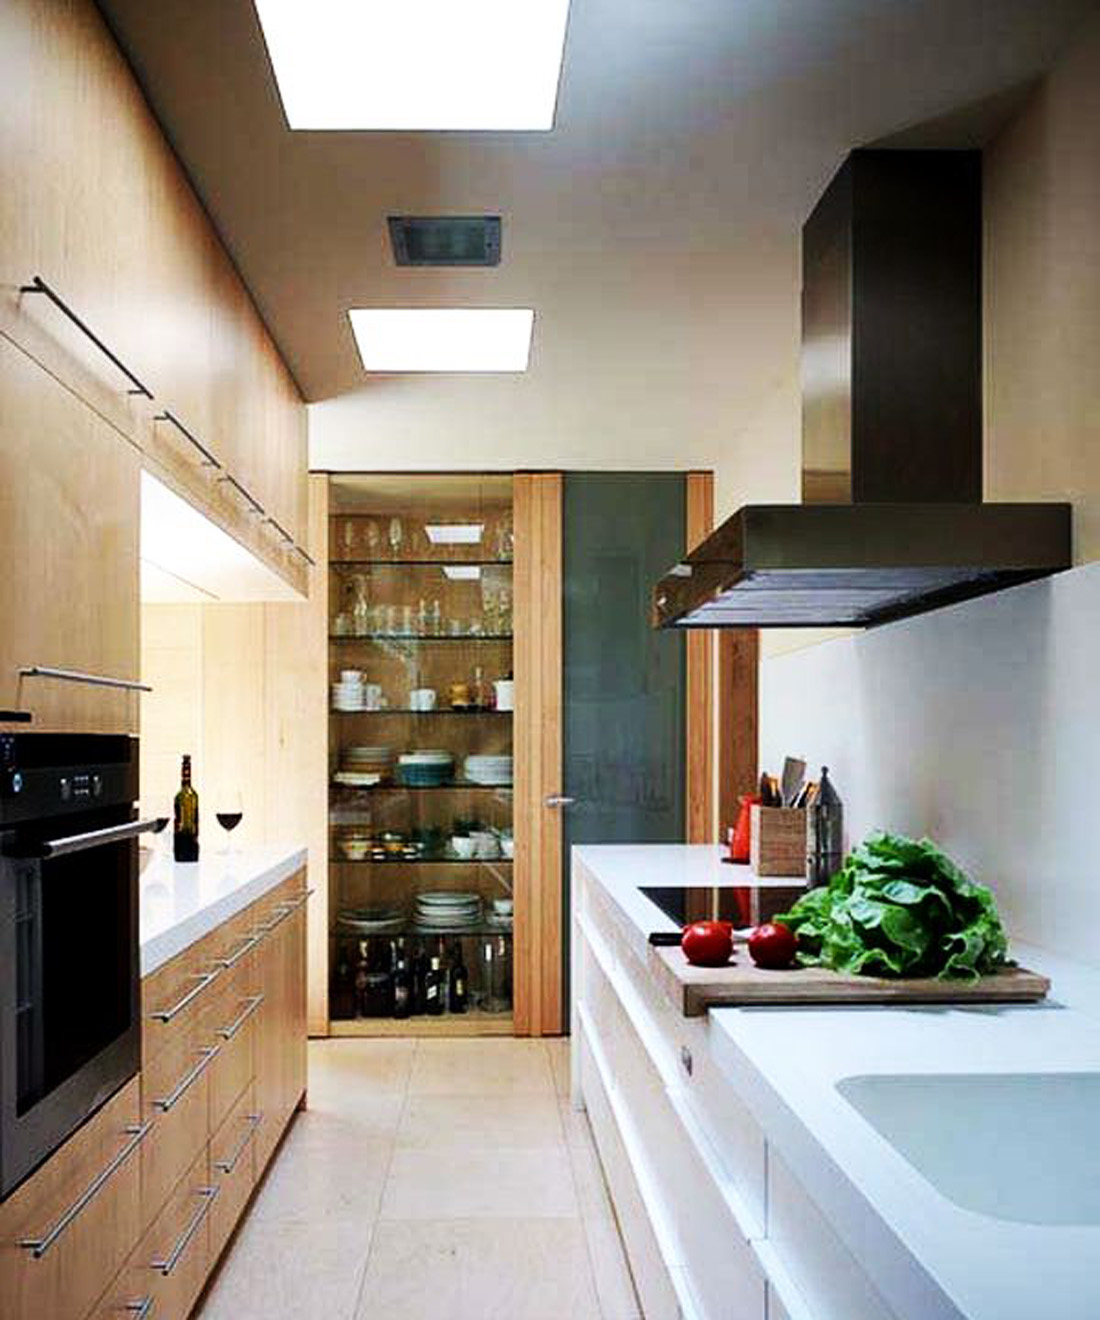 25 modern small kitchen design ideas. Black Bedroom Furniture Sets. Home Design Ideas